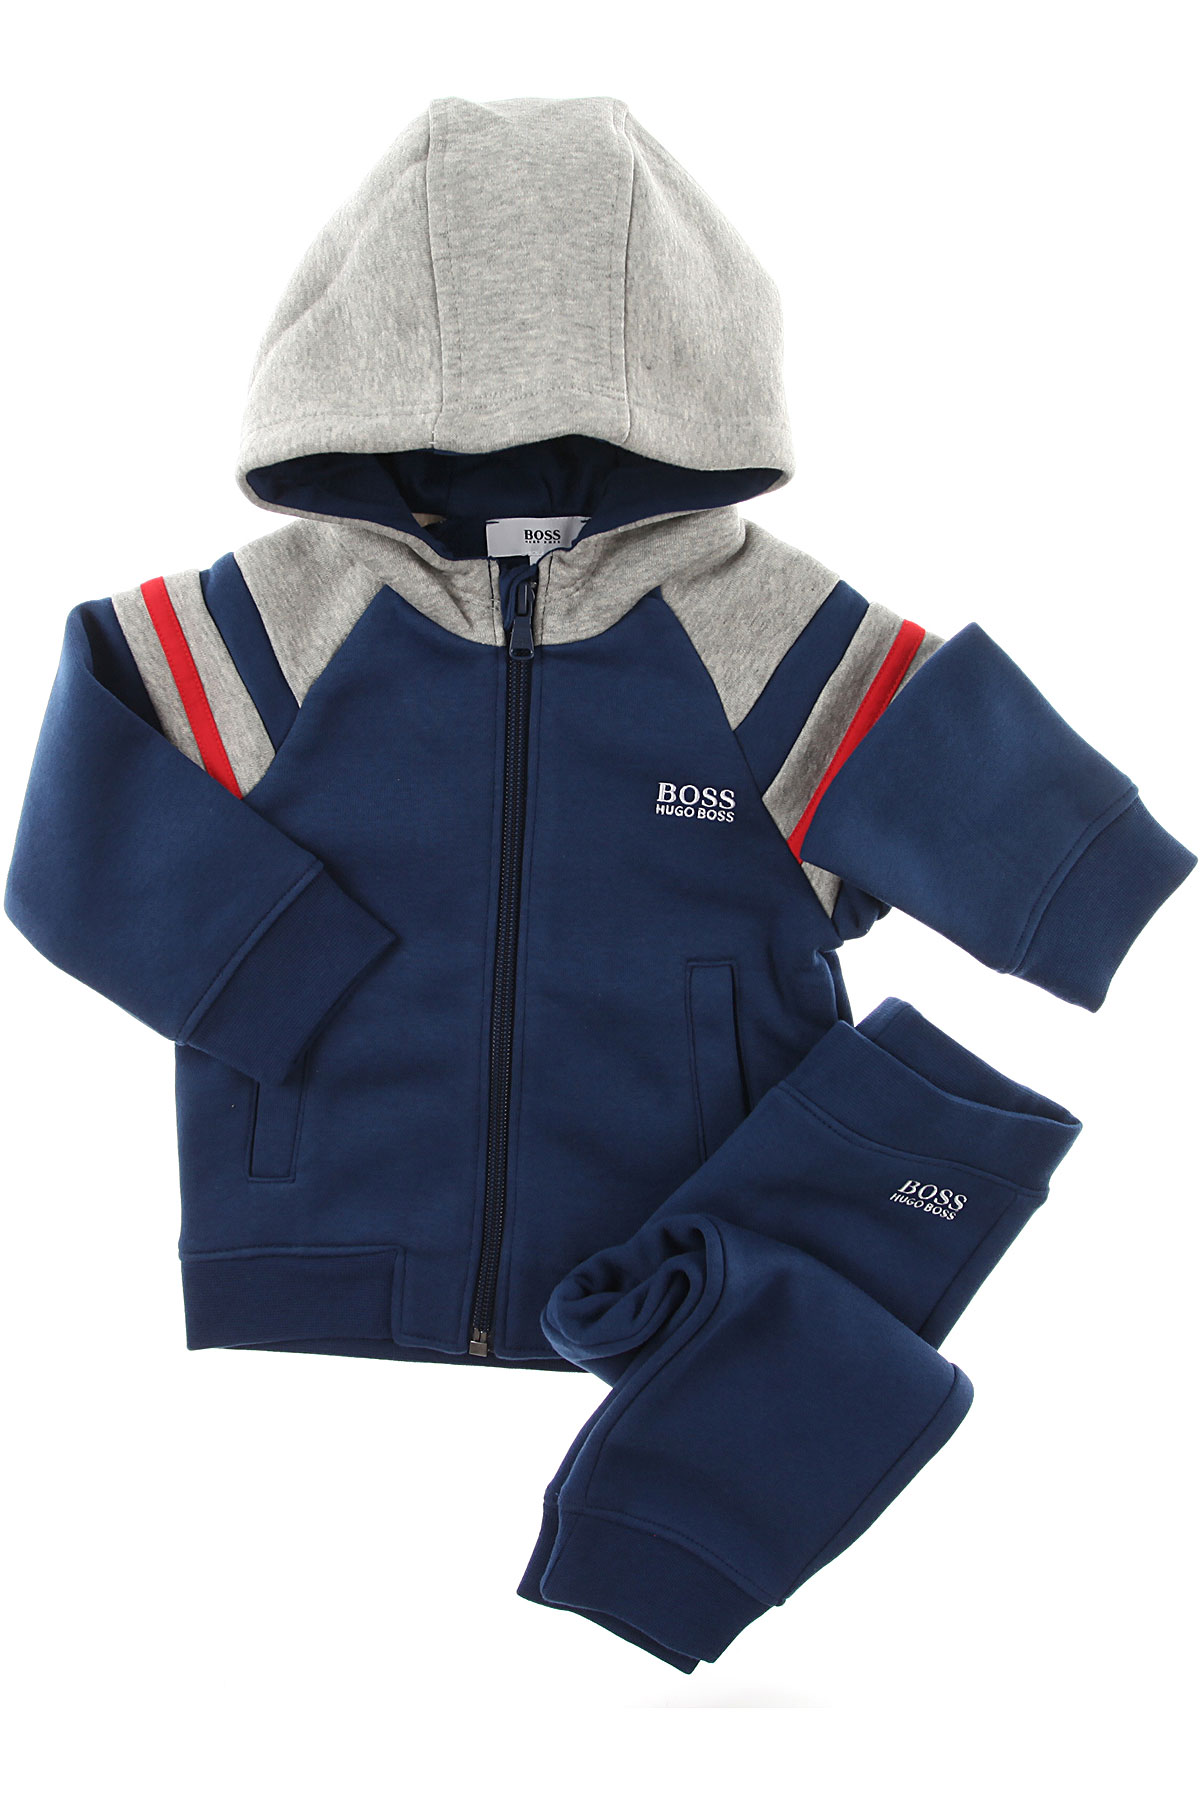 Image of Hugo Boss Baby Sets for Boys, Blue, Cotton, 2017, 12M 18M 2Y 3Y